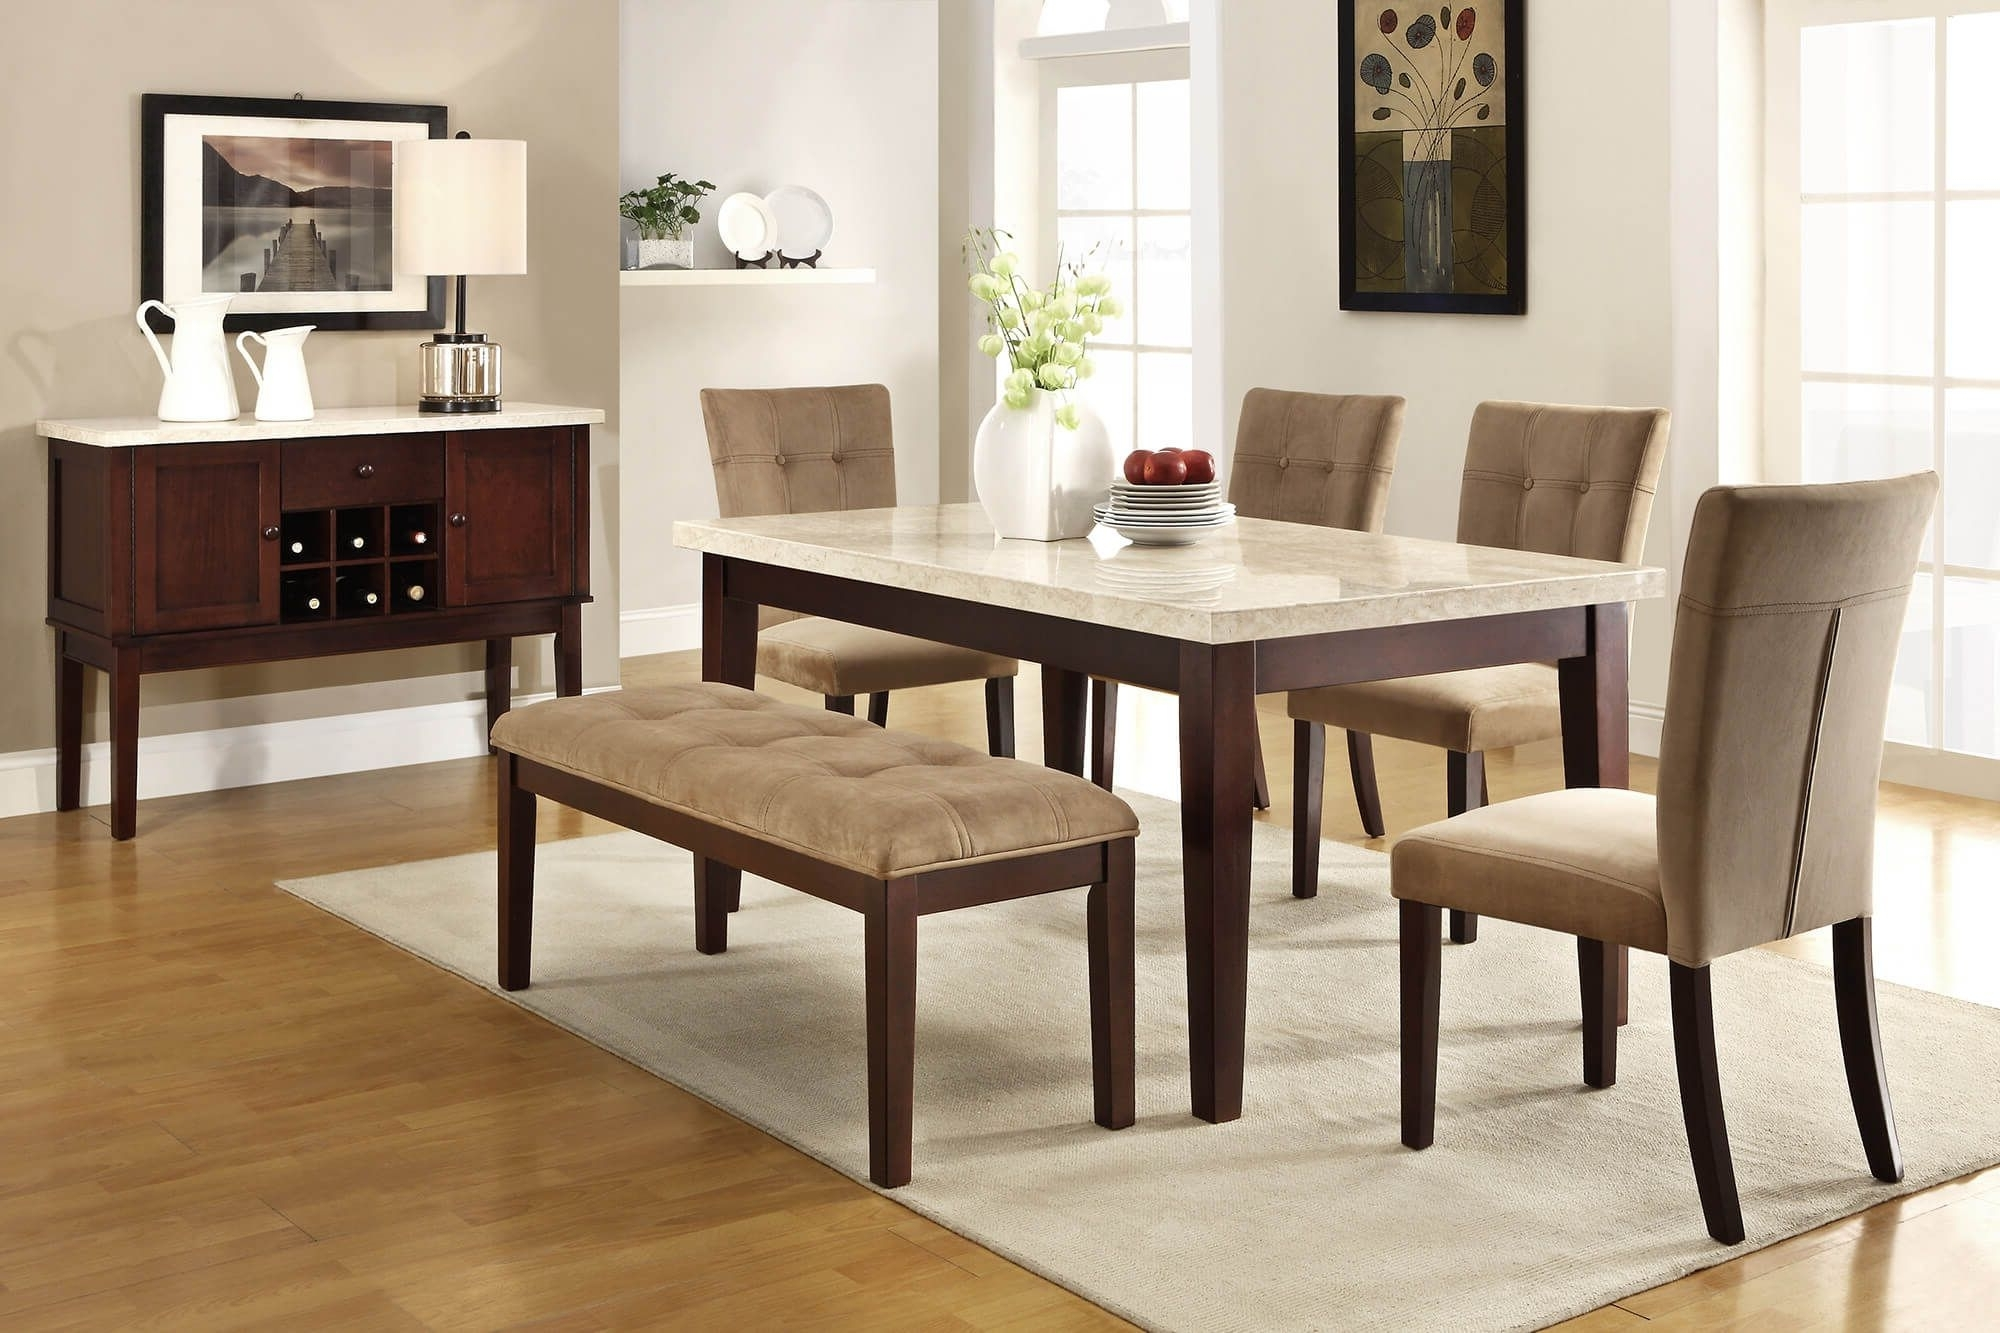 Most Popular Palazzo 9 Piece Dining Sets With Pearson White Side Chairs Pertaining To 26 Dining Room Sets (Big And Small) With Bench Seating (2018) (Gallery 6 of 25)